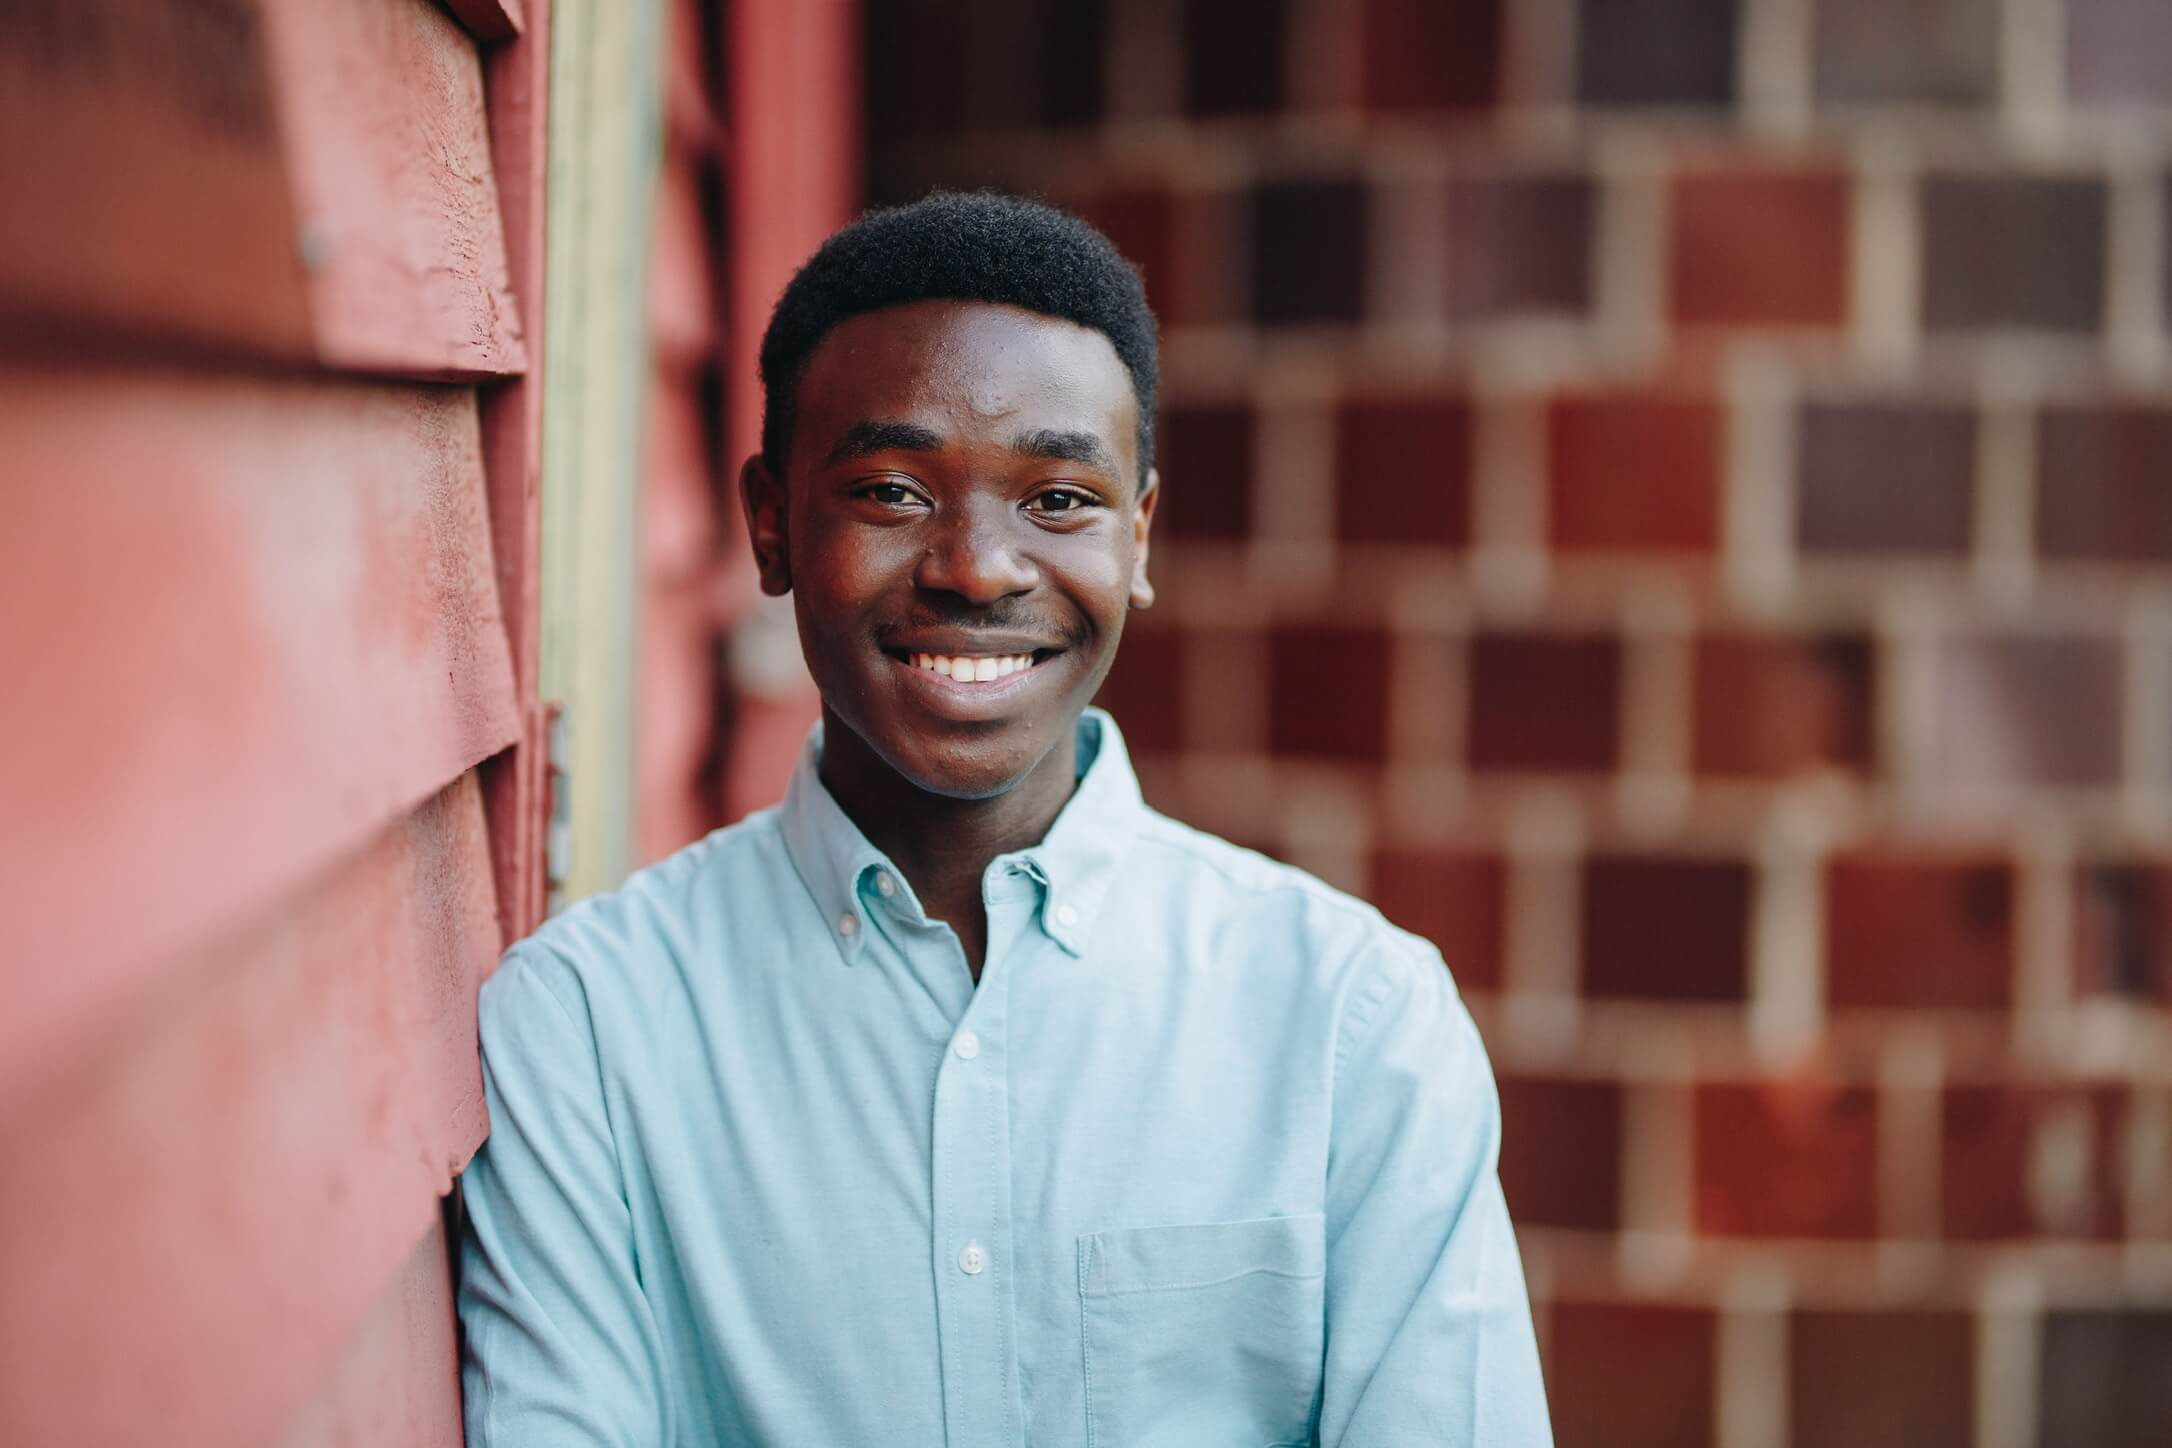 From Tanzania to Indiana: One high schooler's dream to reach the Ivy League